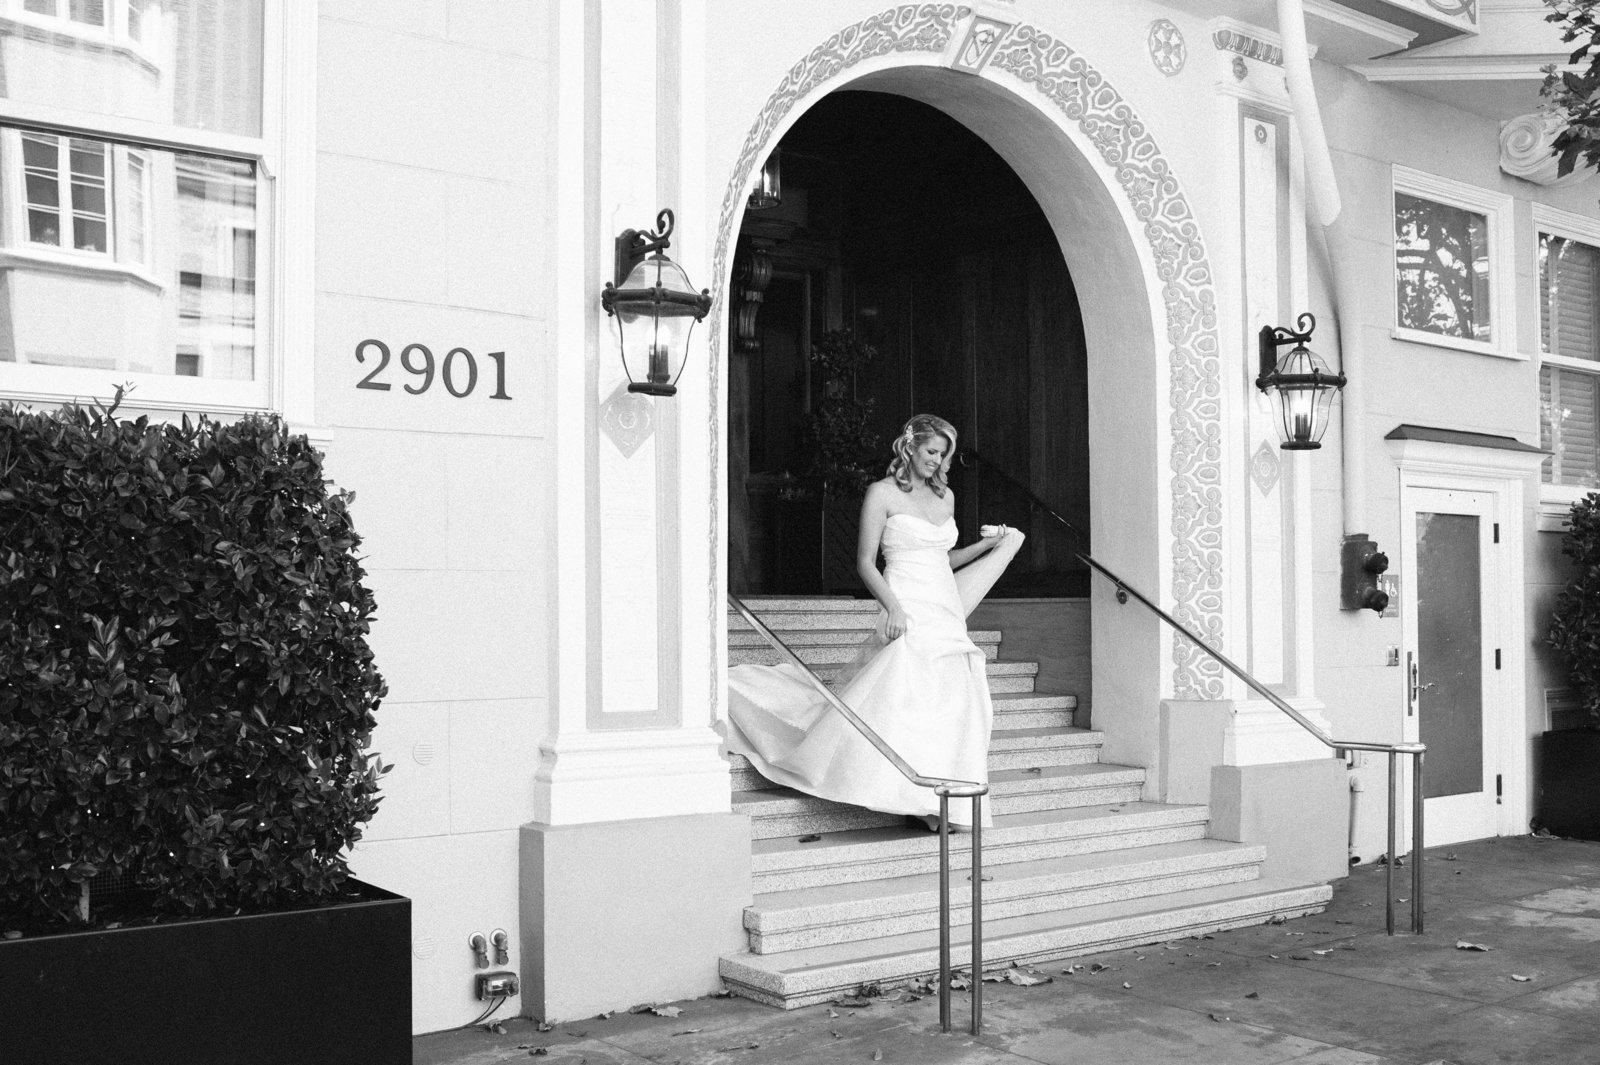 0261-MJ0_7656-san-francisco-california-wedding-flood-mansion-michaela-joy-photography